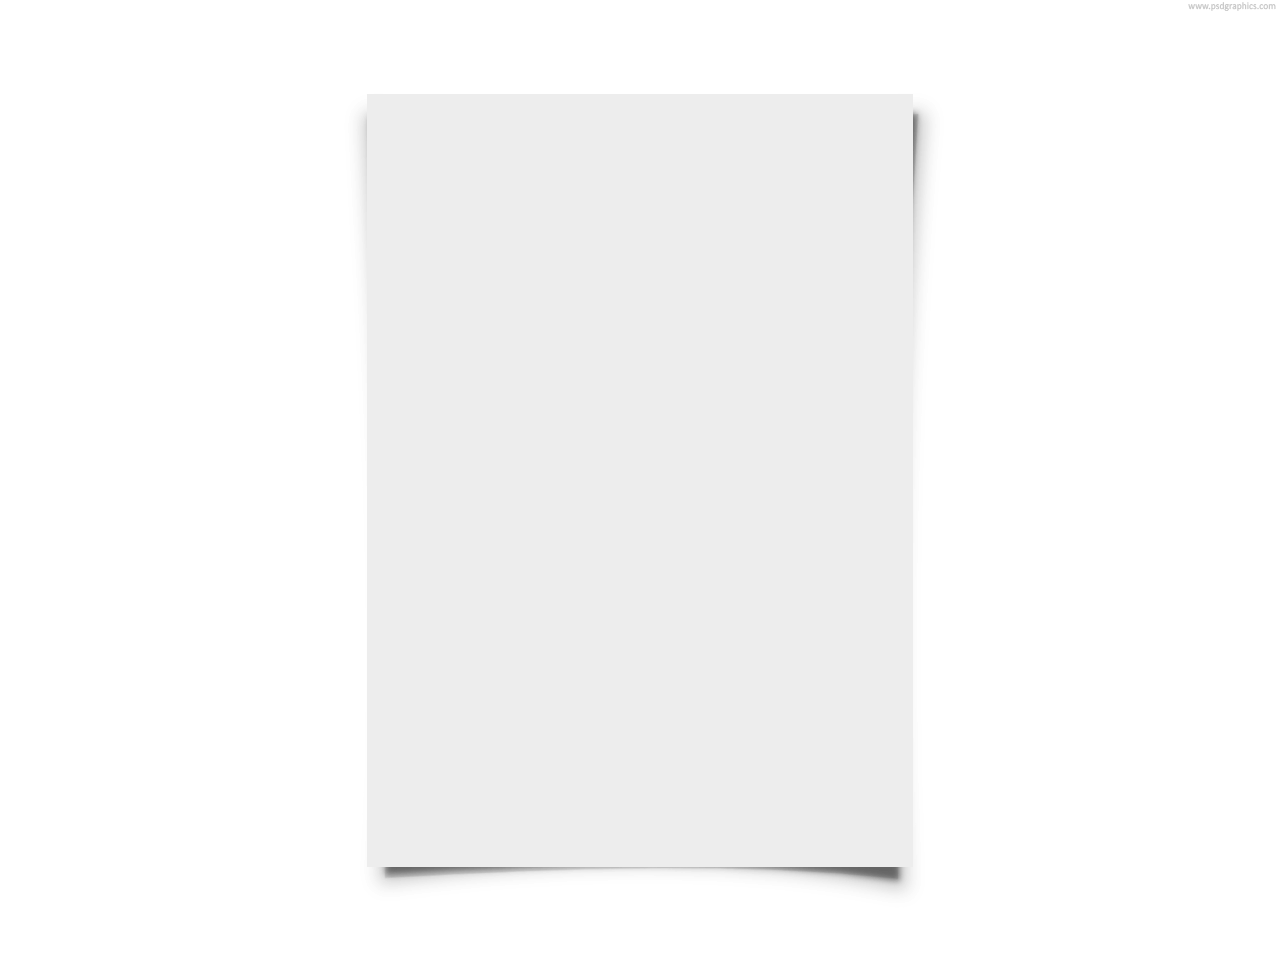 blank white paper psdgraphics #14685